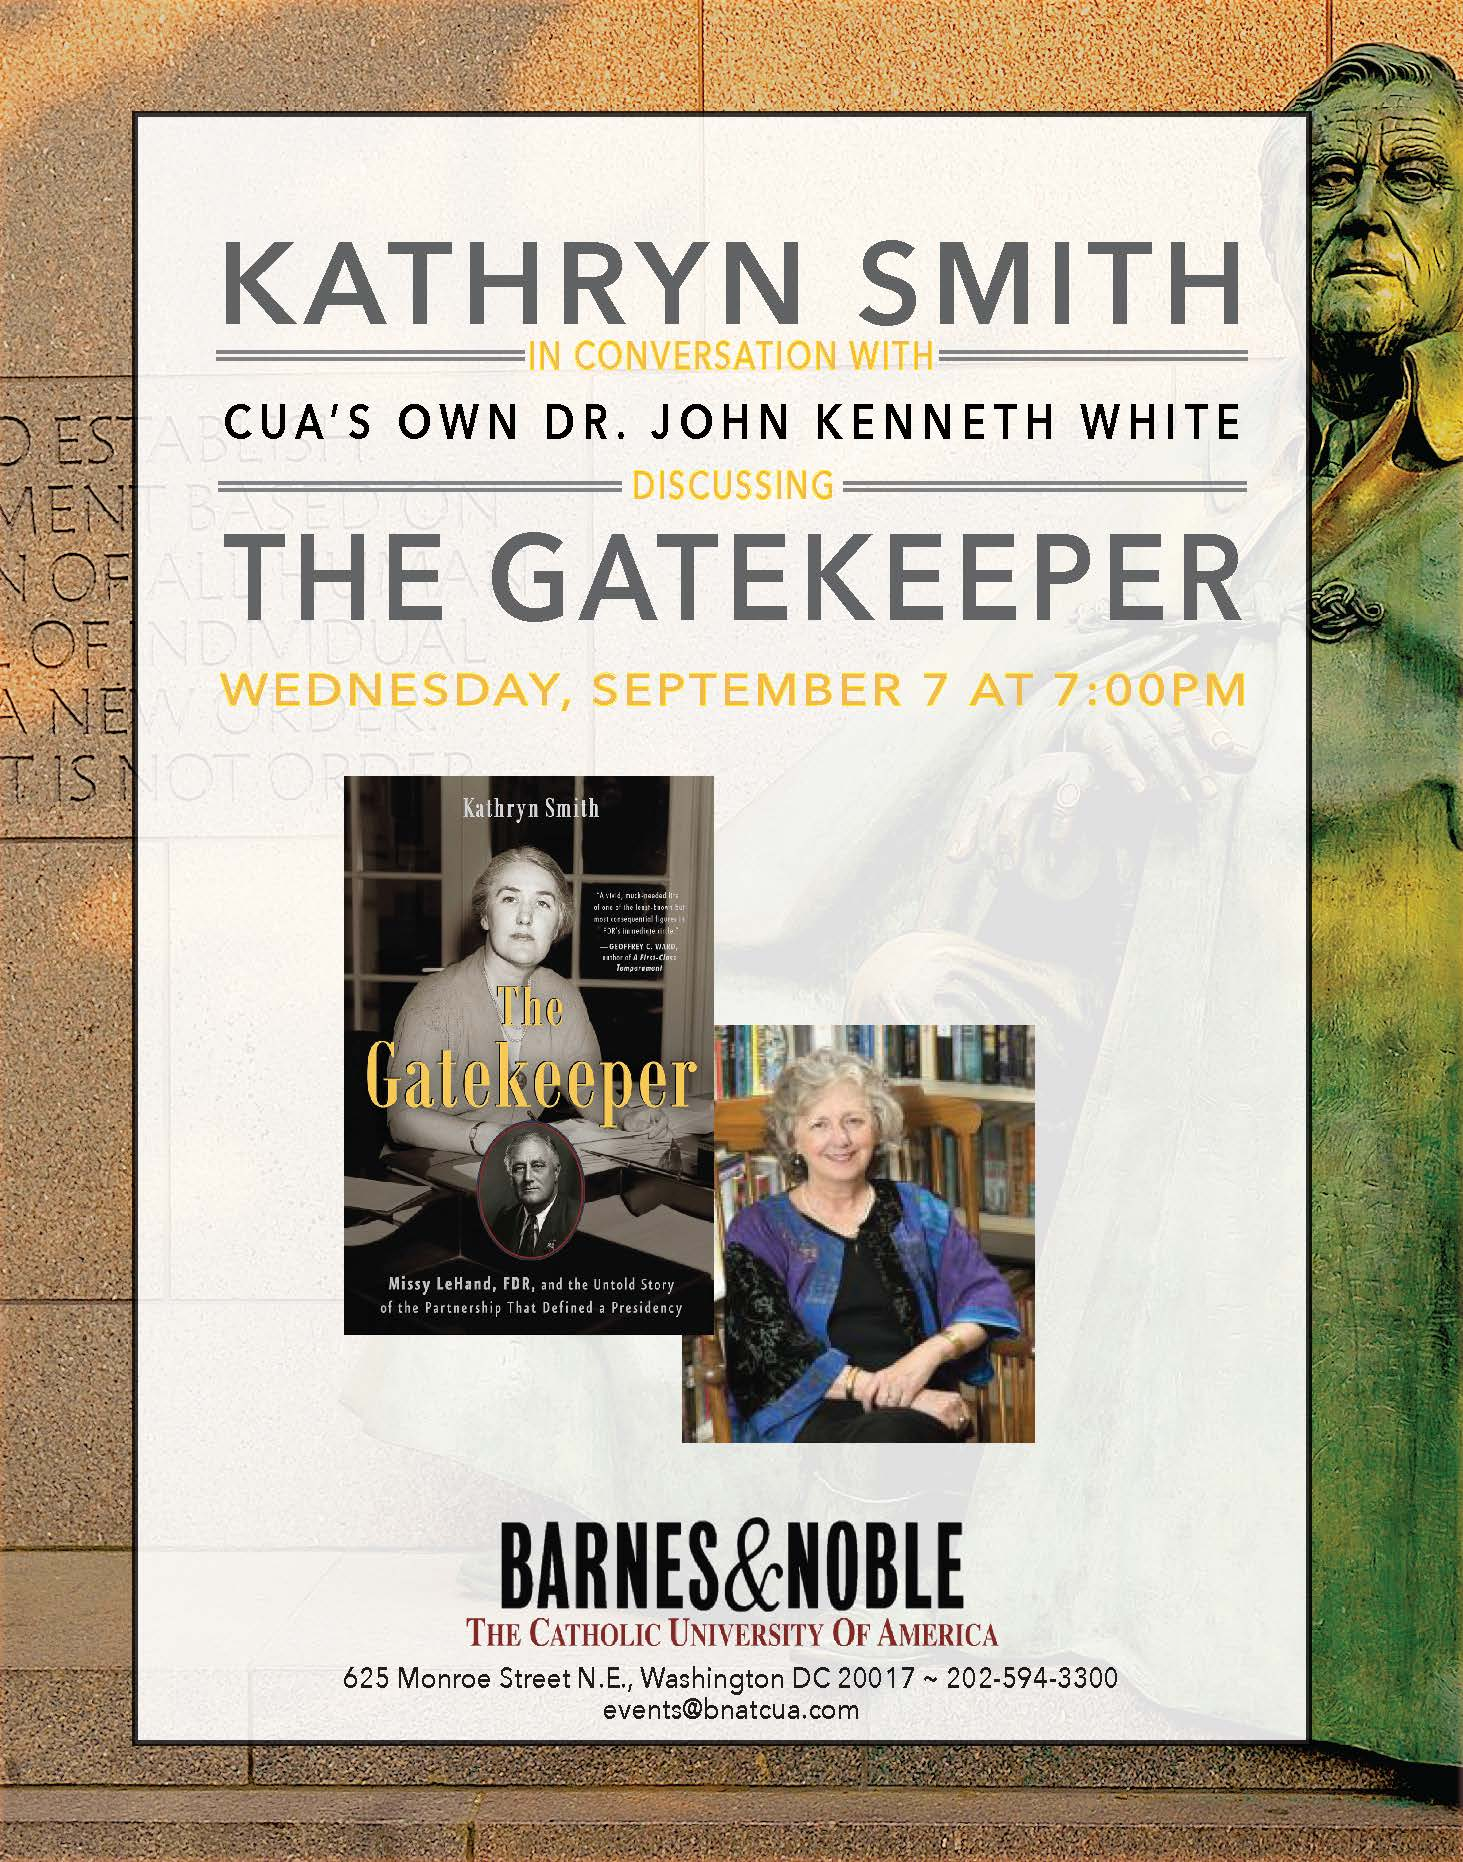 Barnes & Noble: Kathryn Smith Discusses The Gatekeeper